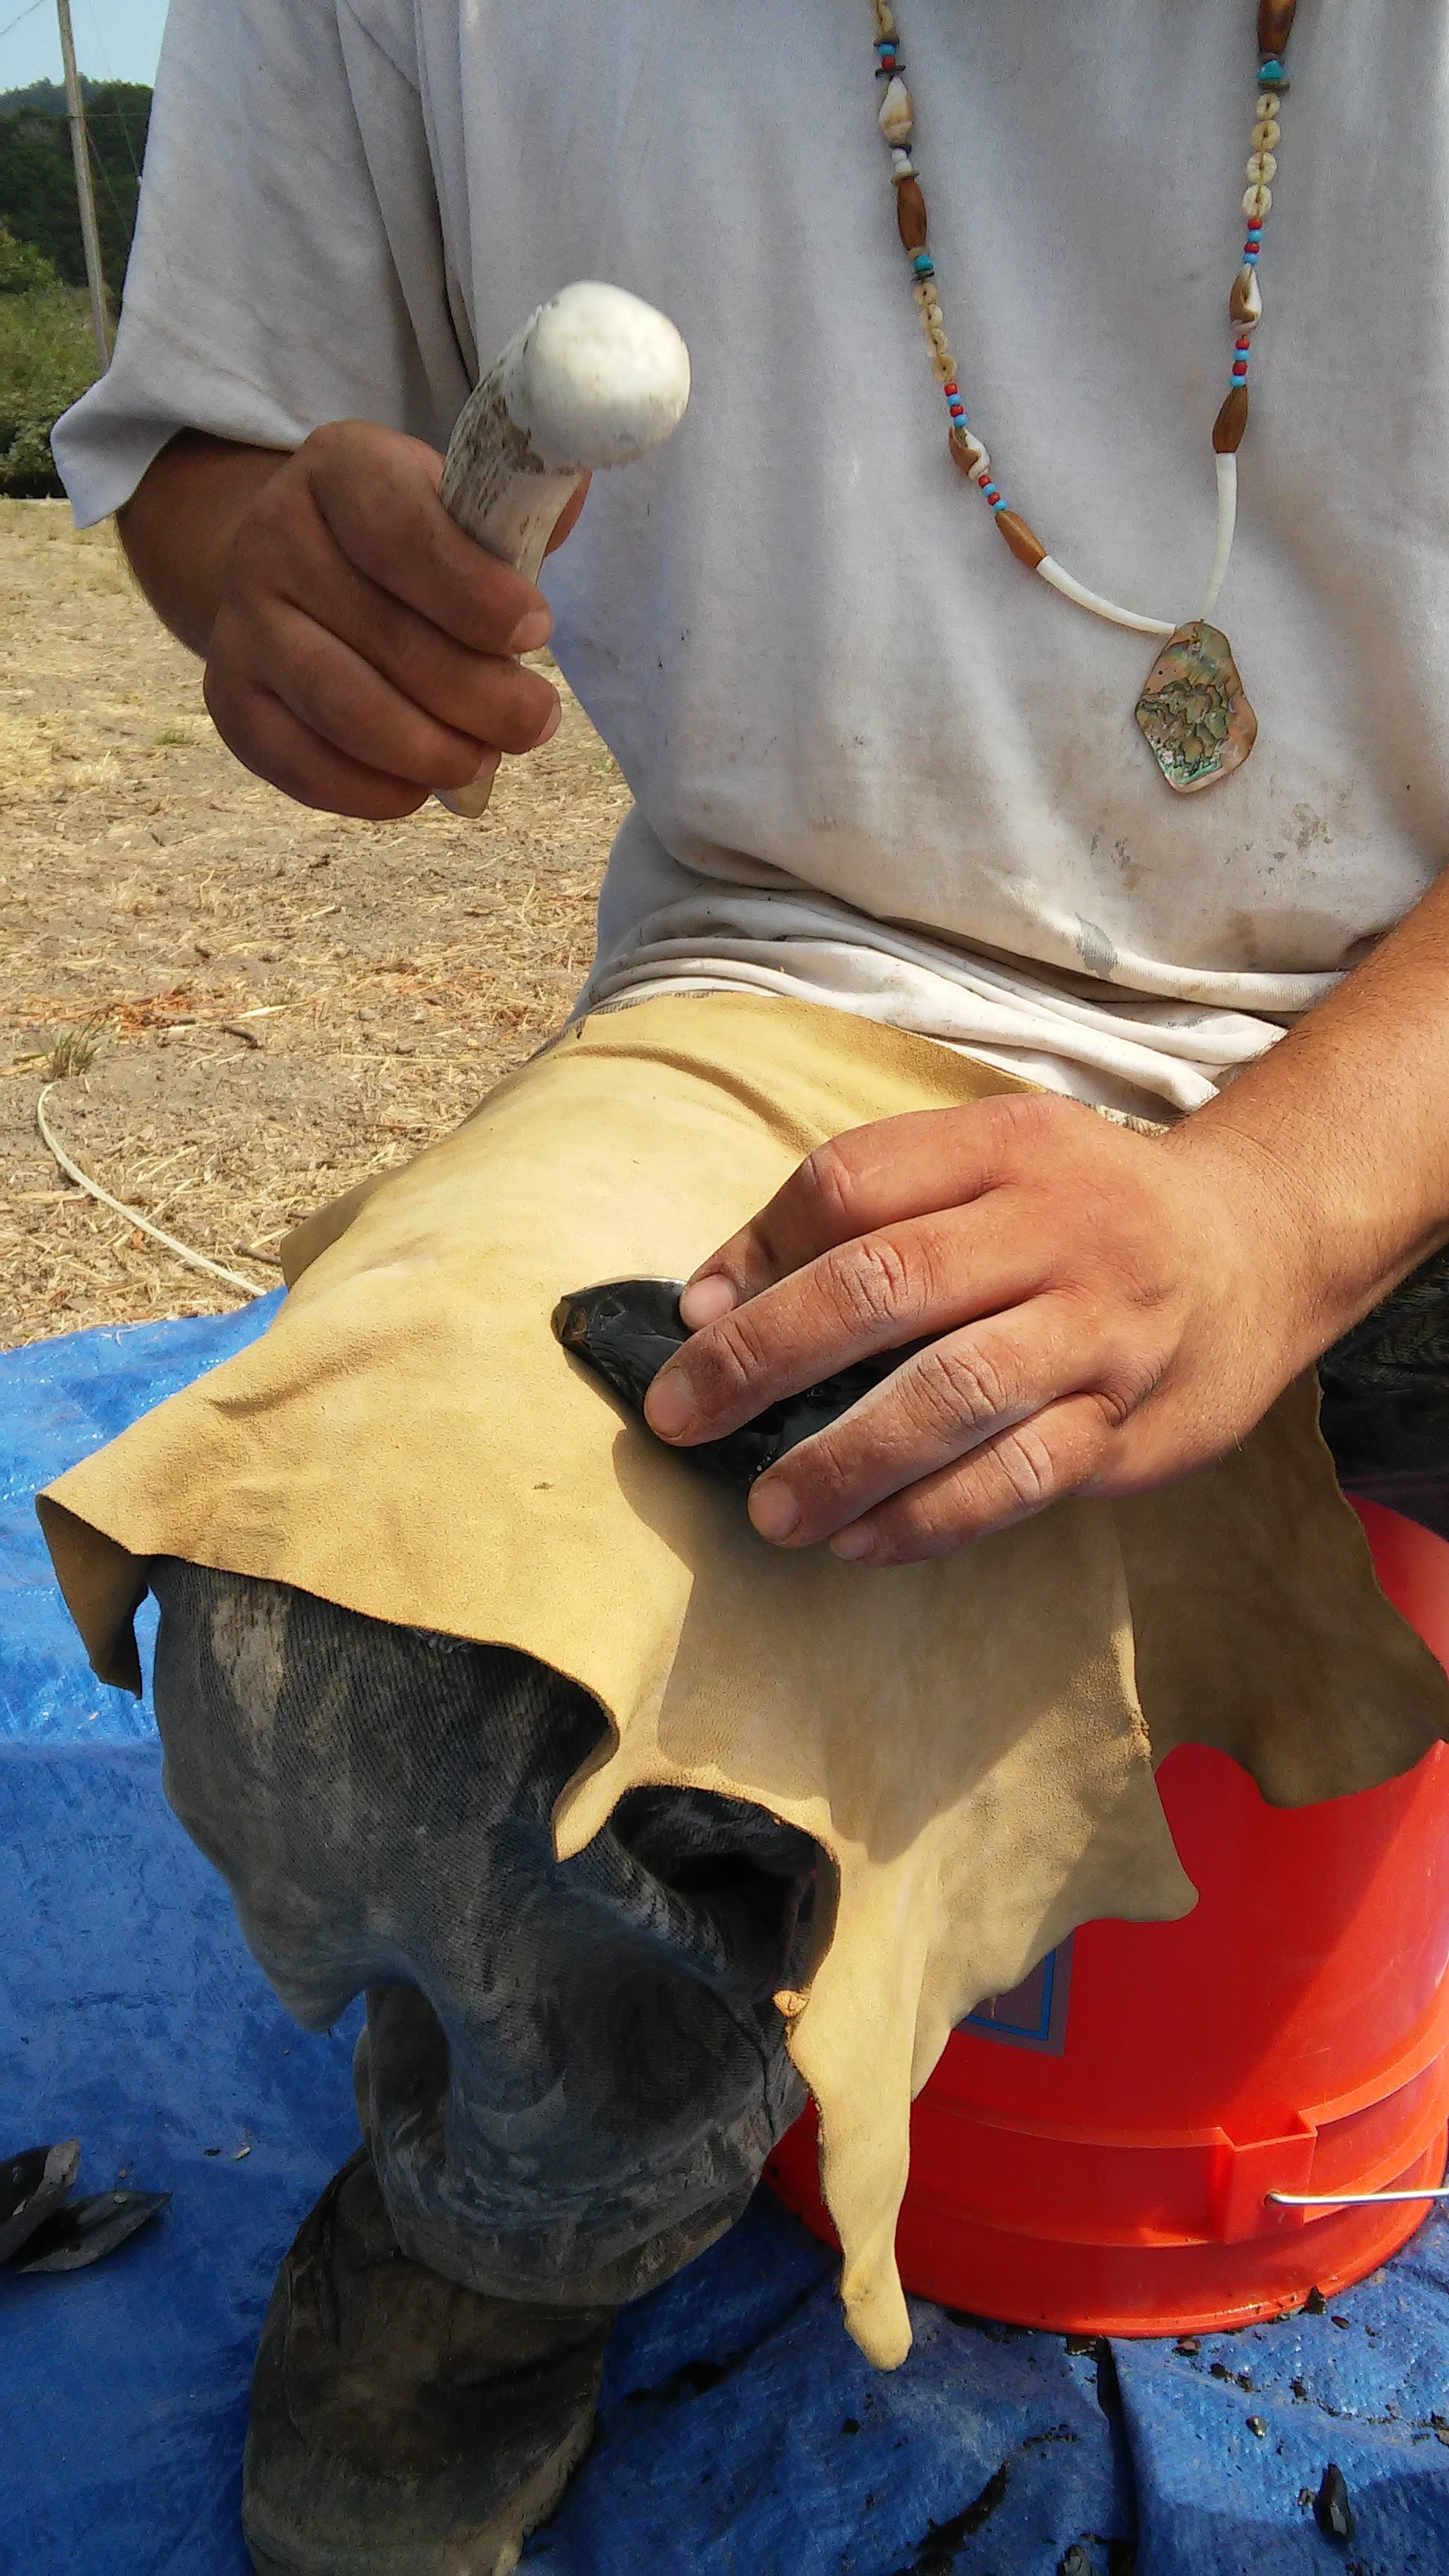 Native Steward Paul Lopez uses an elk antler to flake an obsidian core in an arrowhead-making demonstration. Native Stewards learn and practice traditional crafts and skills at Stewardship Corps, keeping skills like flintknapping alive within the Amah Mutsun Tribal Band.